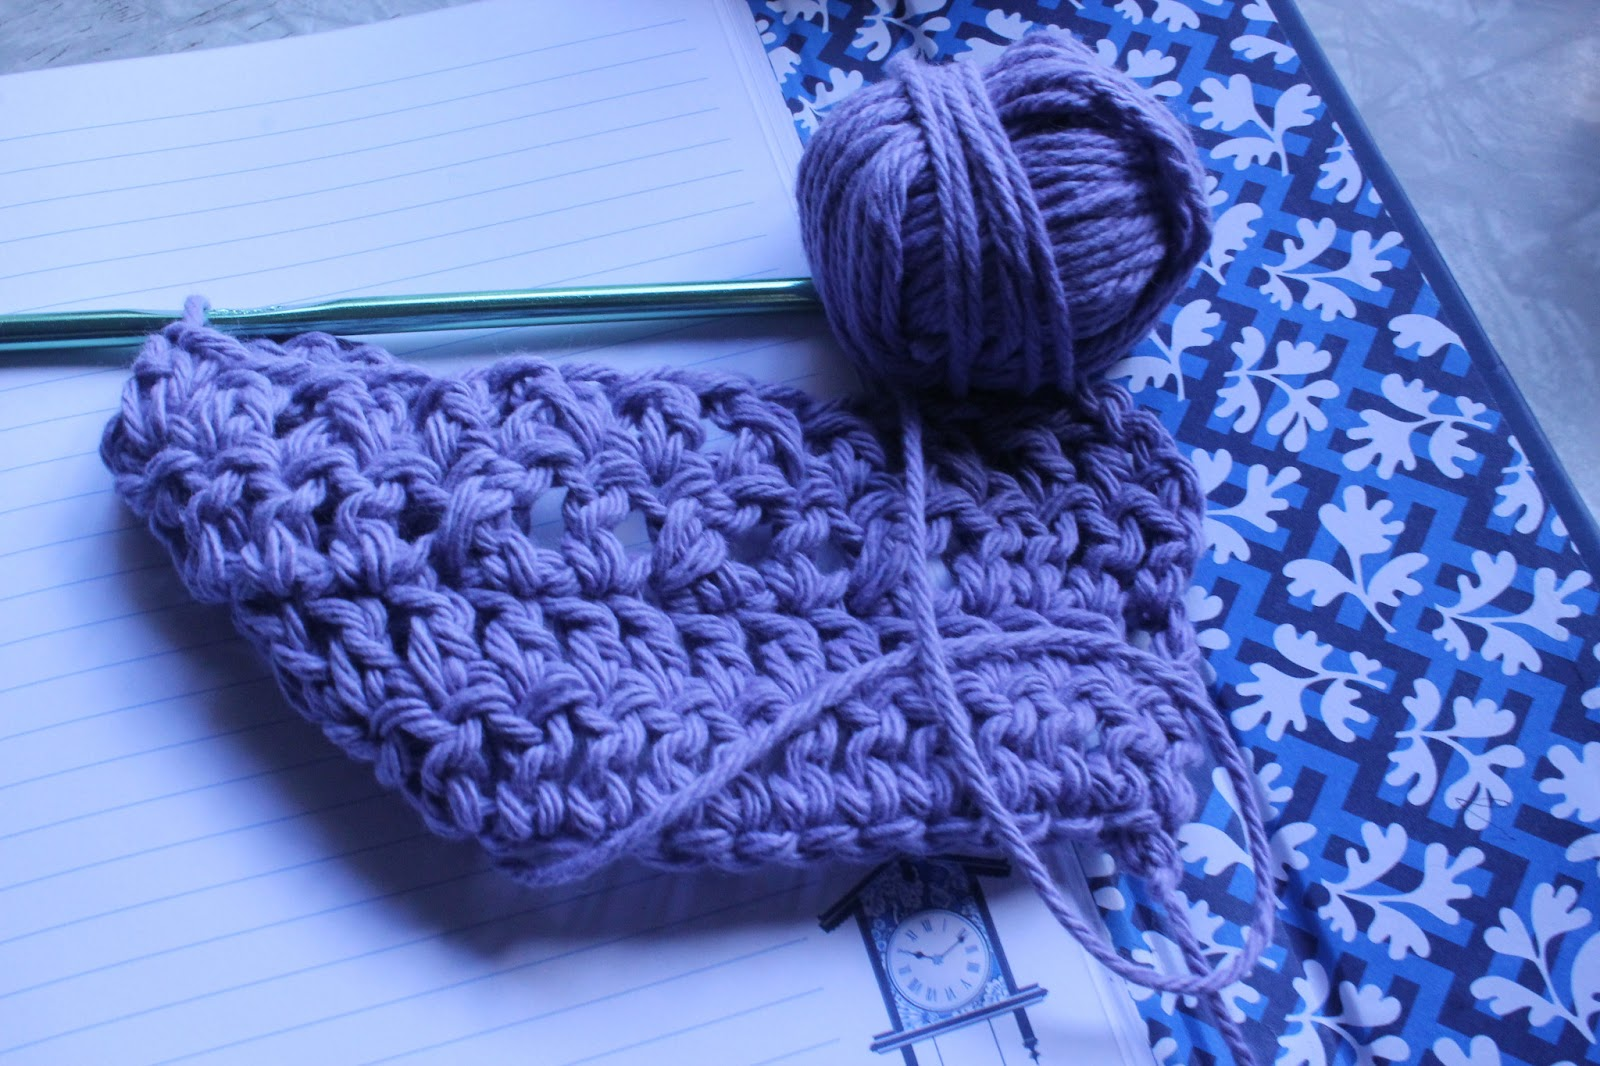 Crocheting Instructions For Left Handers : ... Life at Leisure: Learn to Crochet: Crochet Cross Stitch (Left-Handed